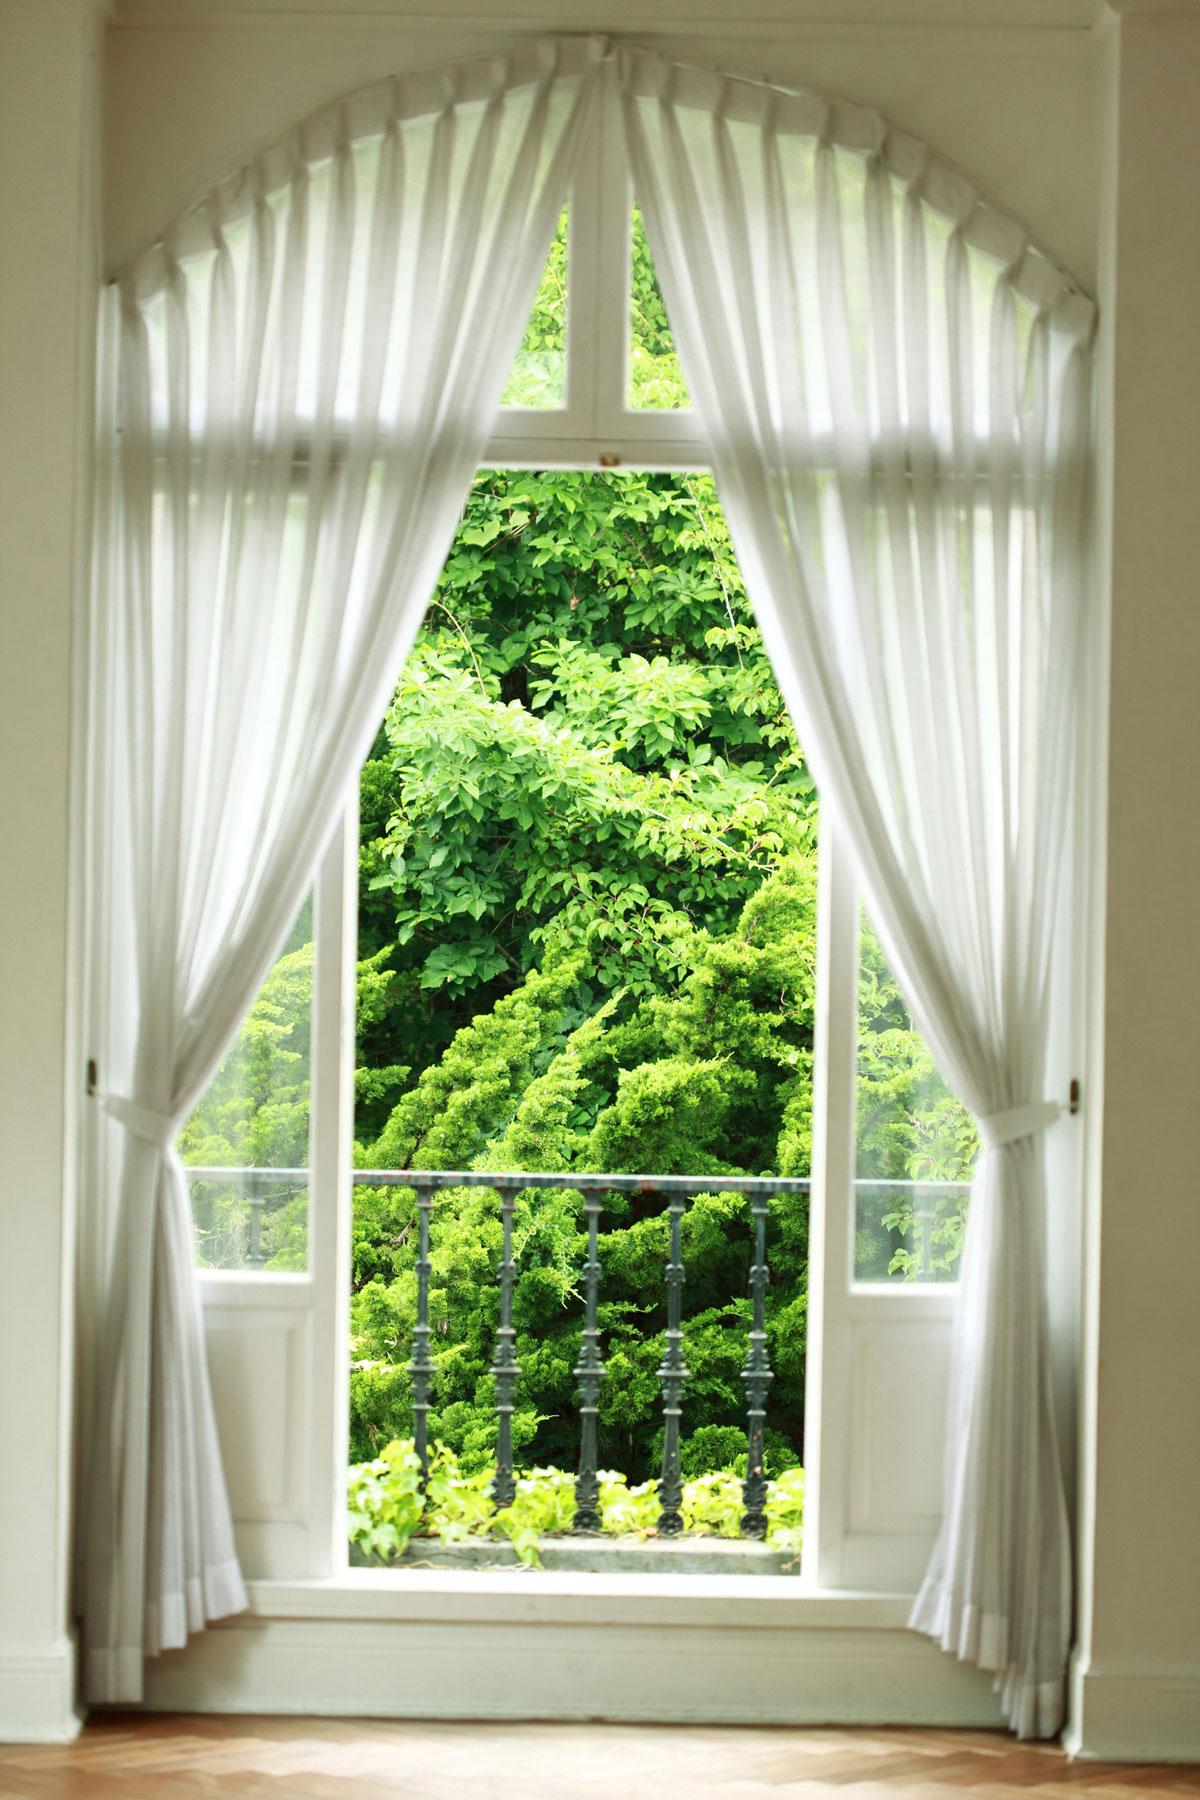 Curtains and Window Treatments Guide - curtain with tie-backs